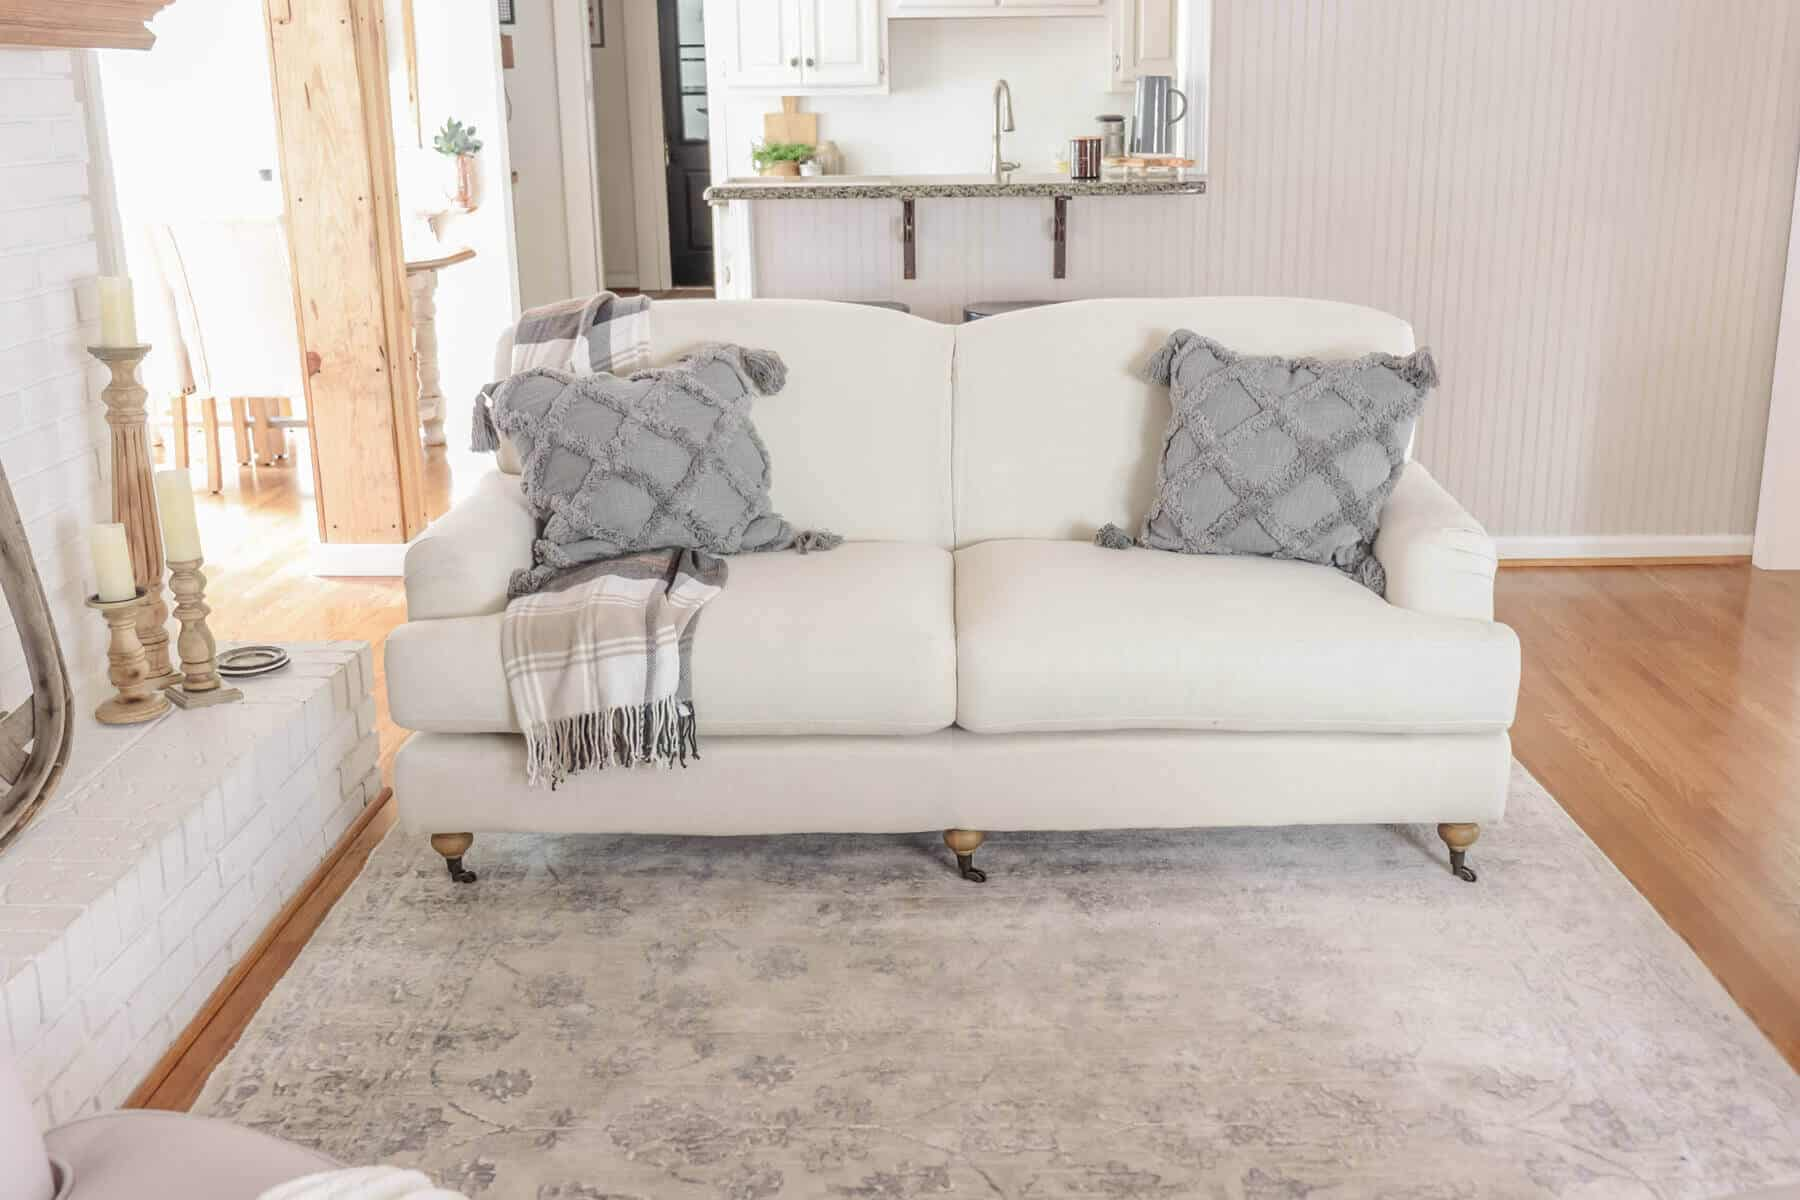 curved back sofa with gray pillows